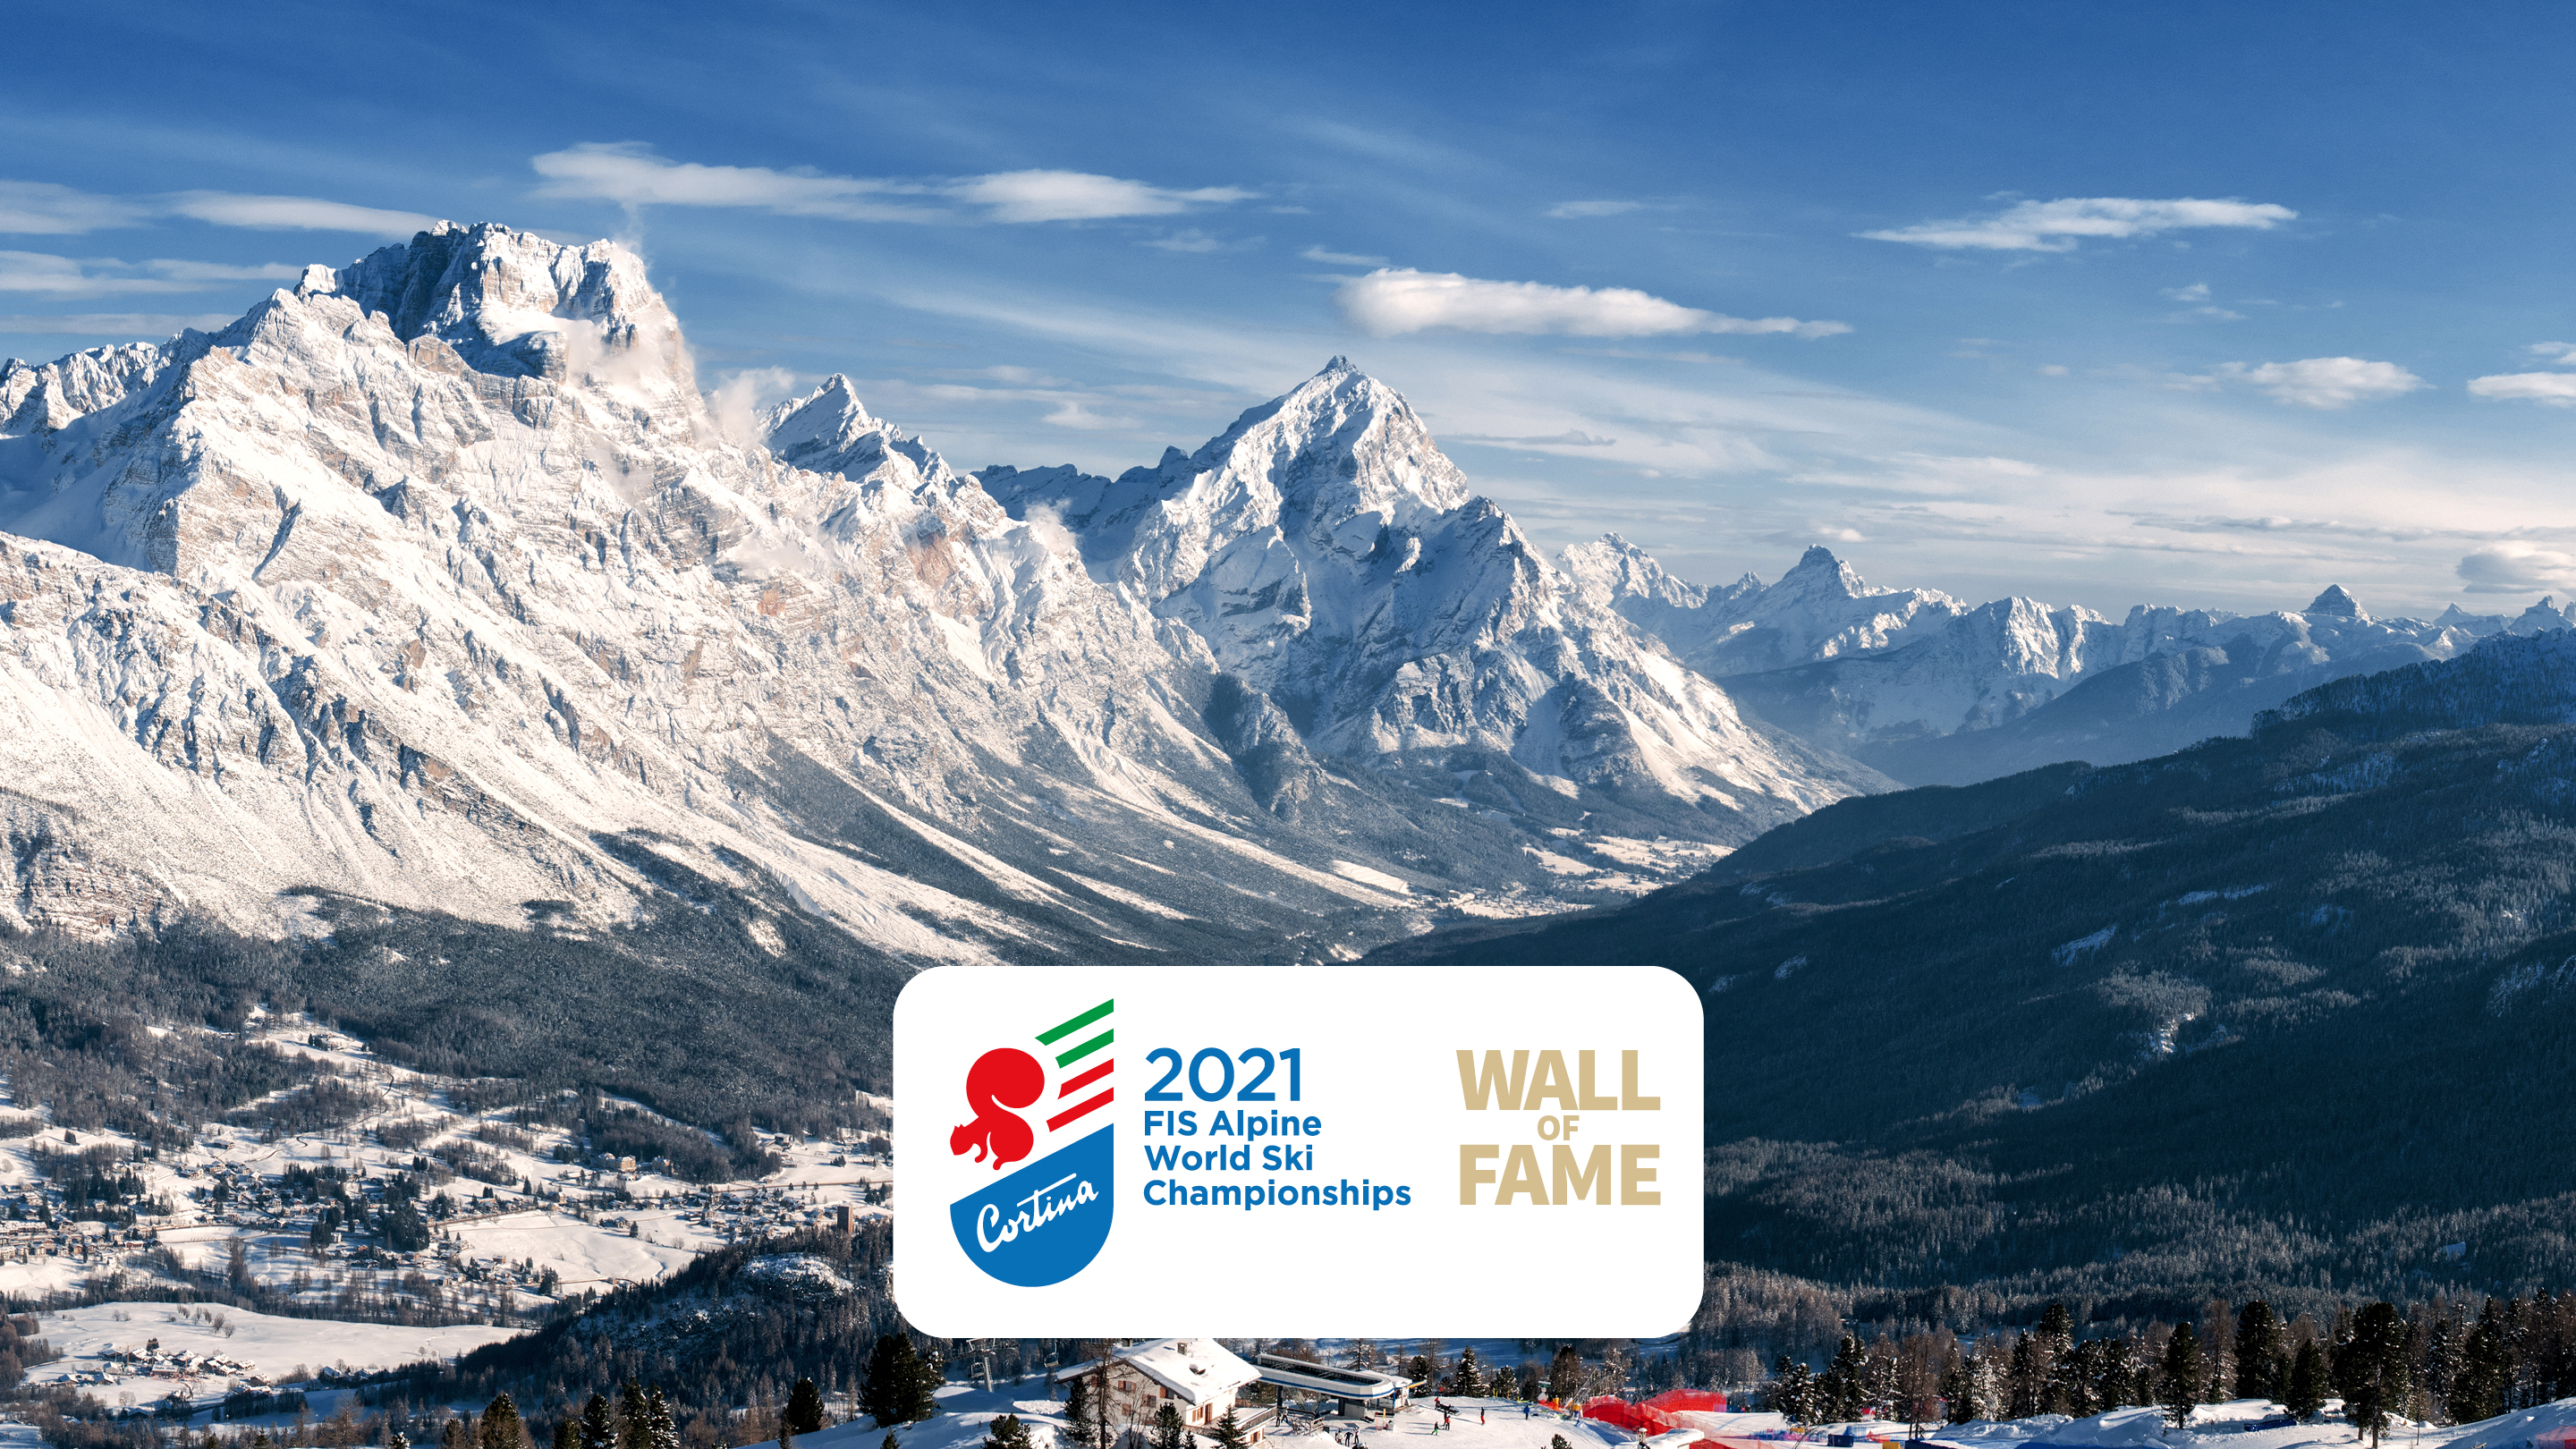 Cortina 2021 Wall of Fame